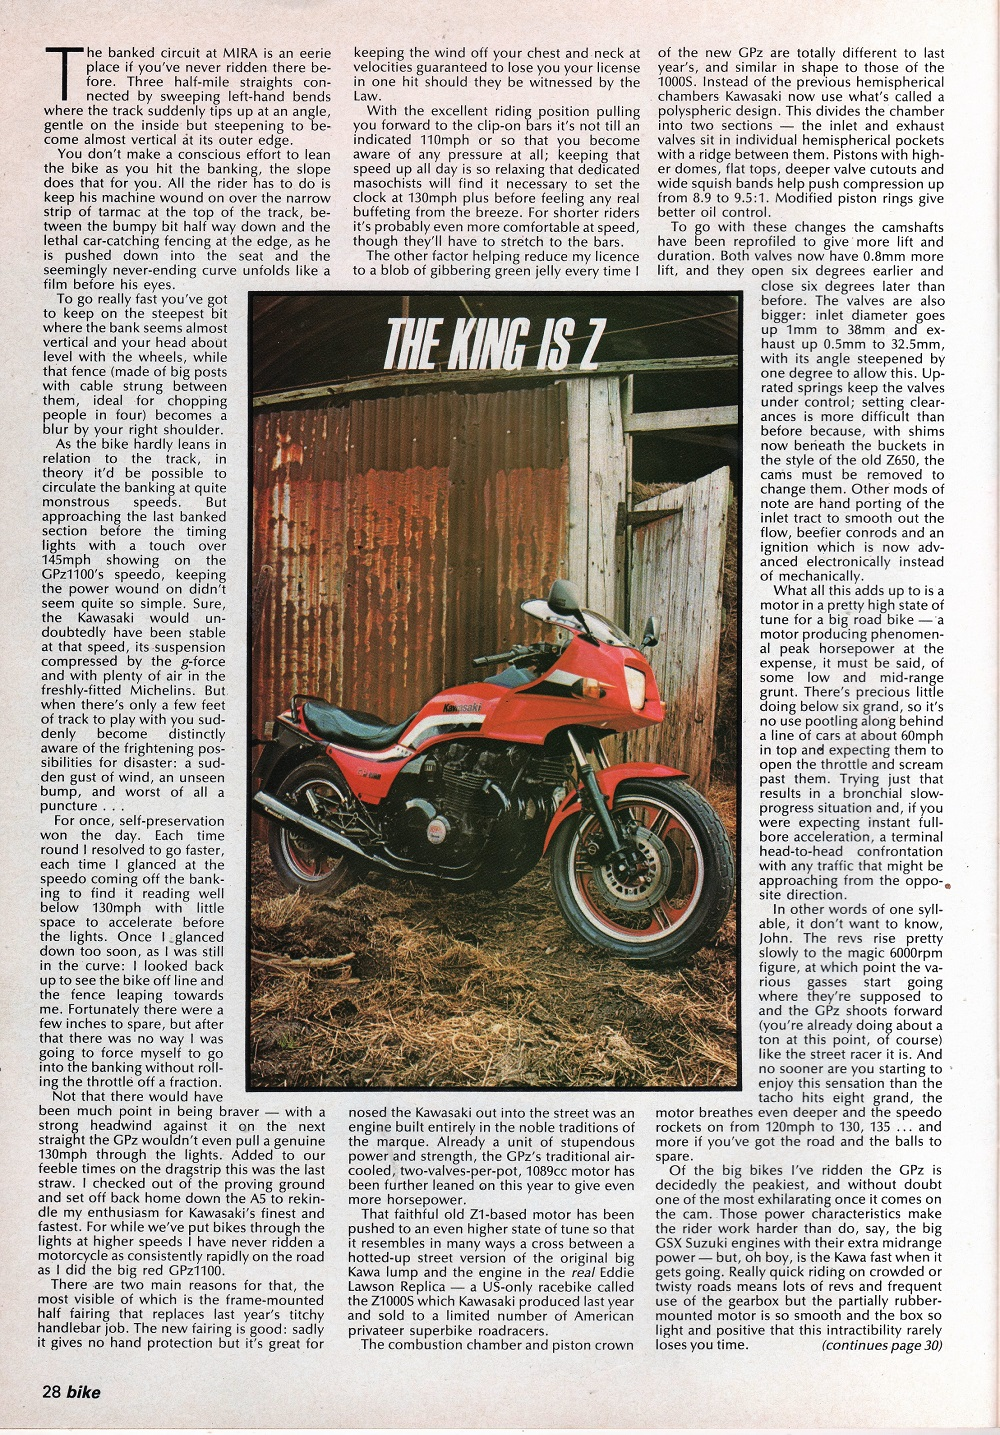 1983 Kawasaki GPZ 1100 road test. 3.jpg